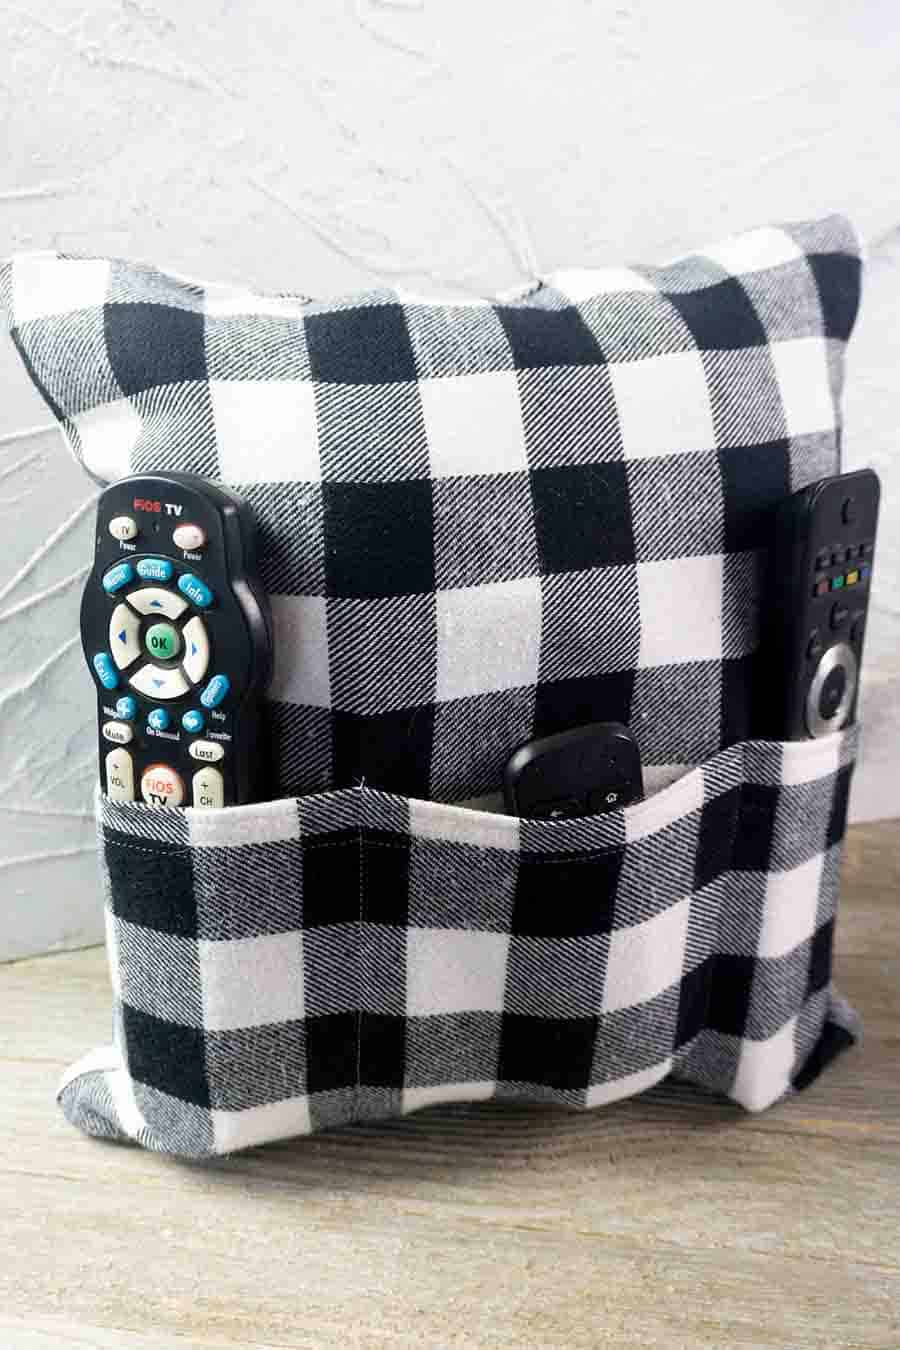 Easy Sew Pillow and Remote Holder - Sewing Tutorial